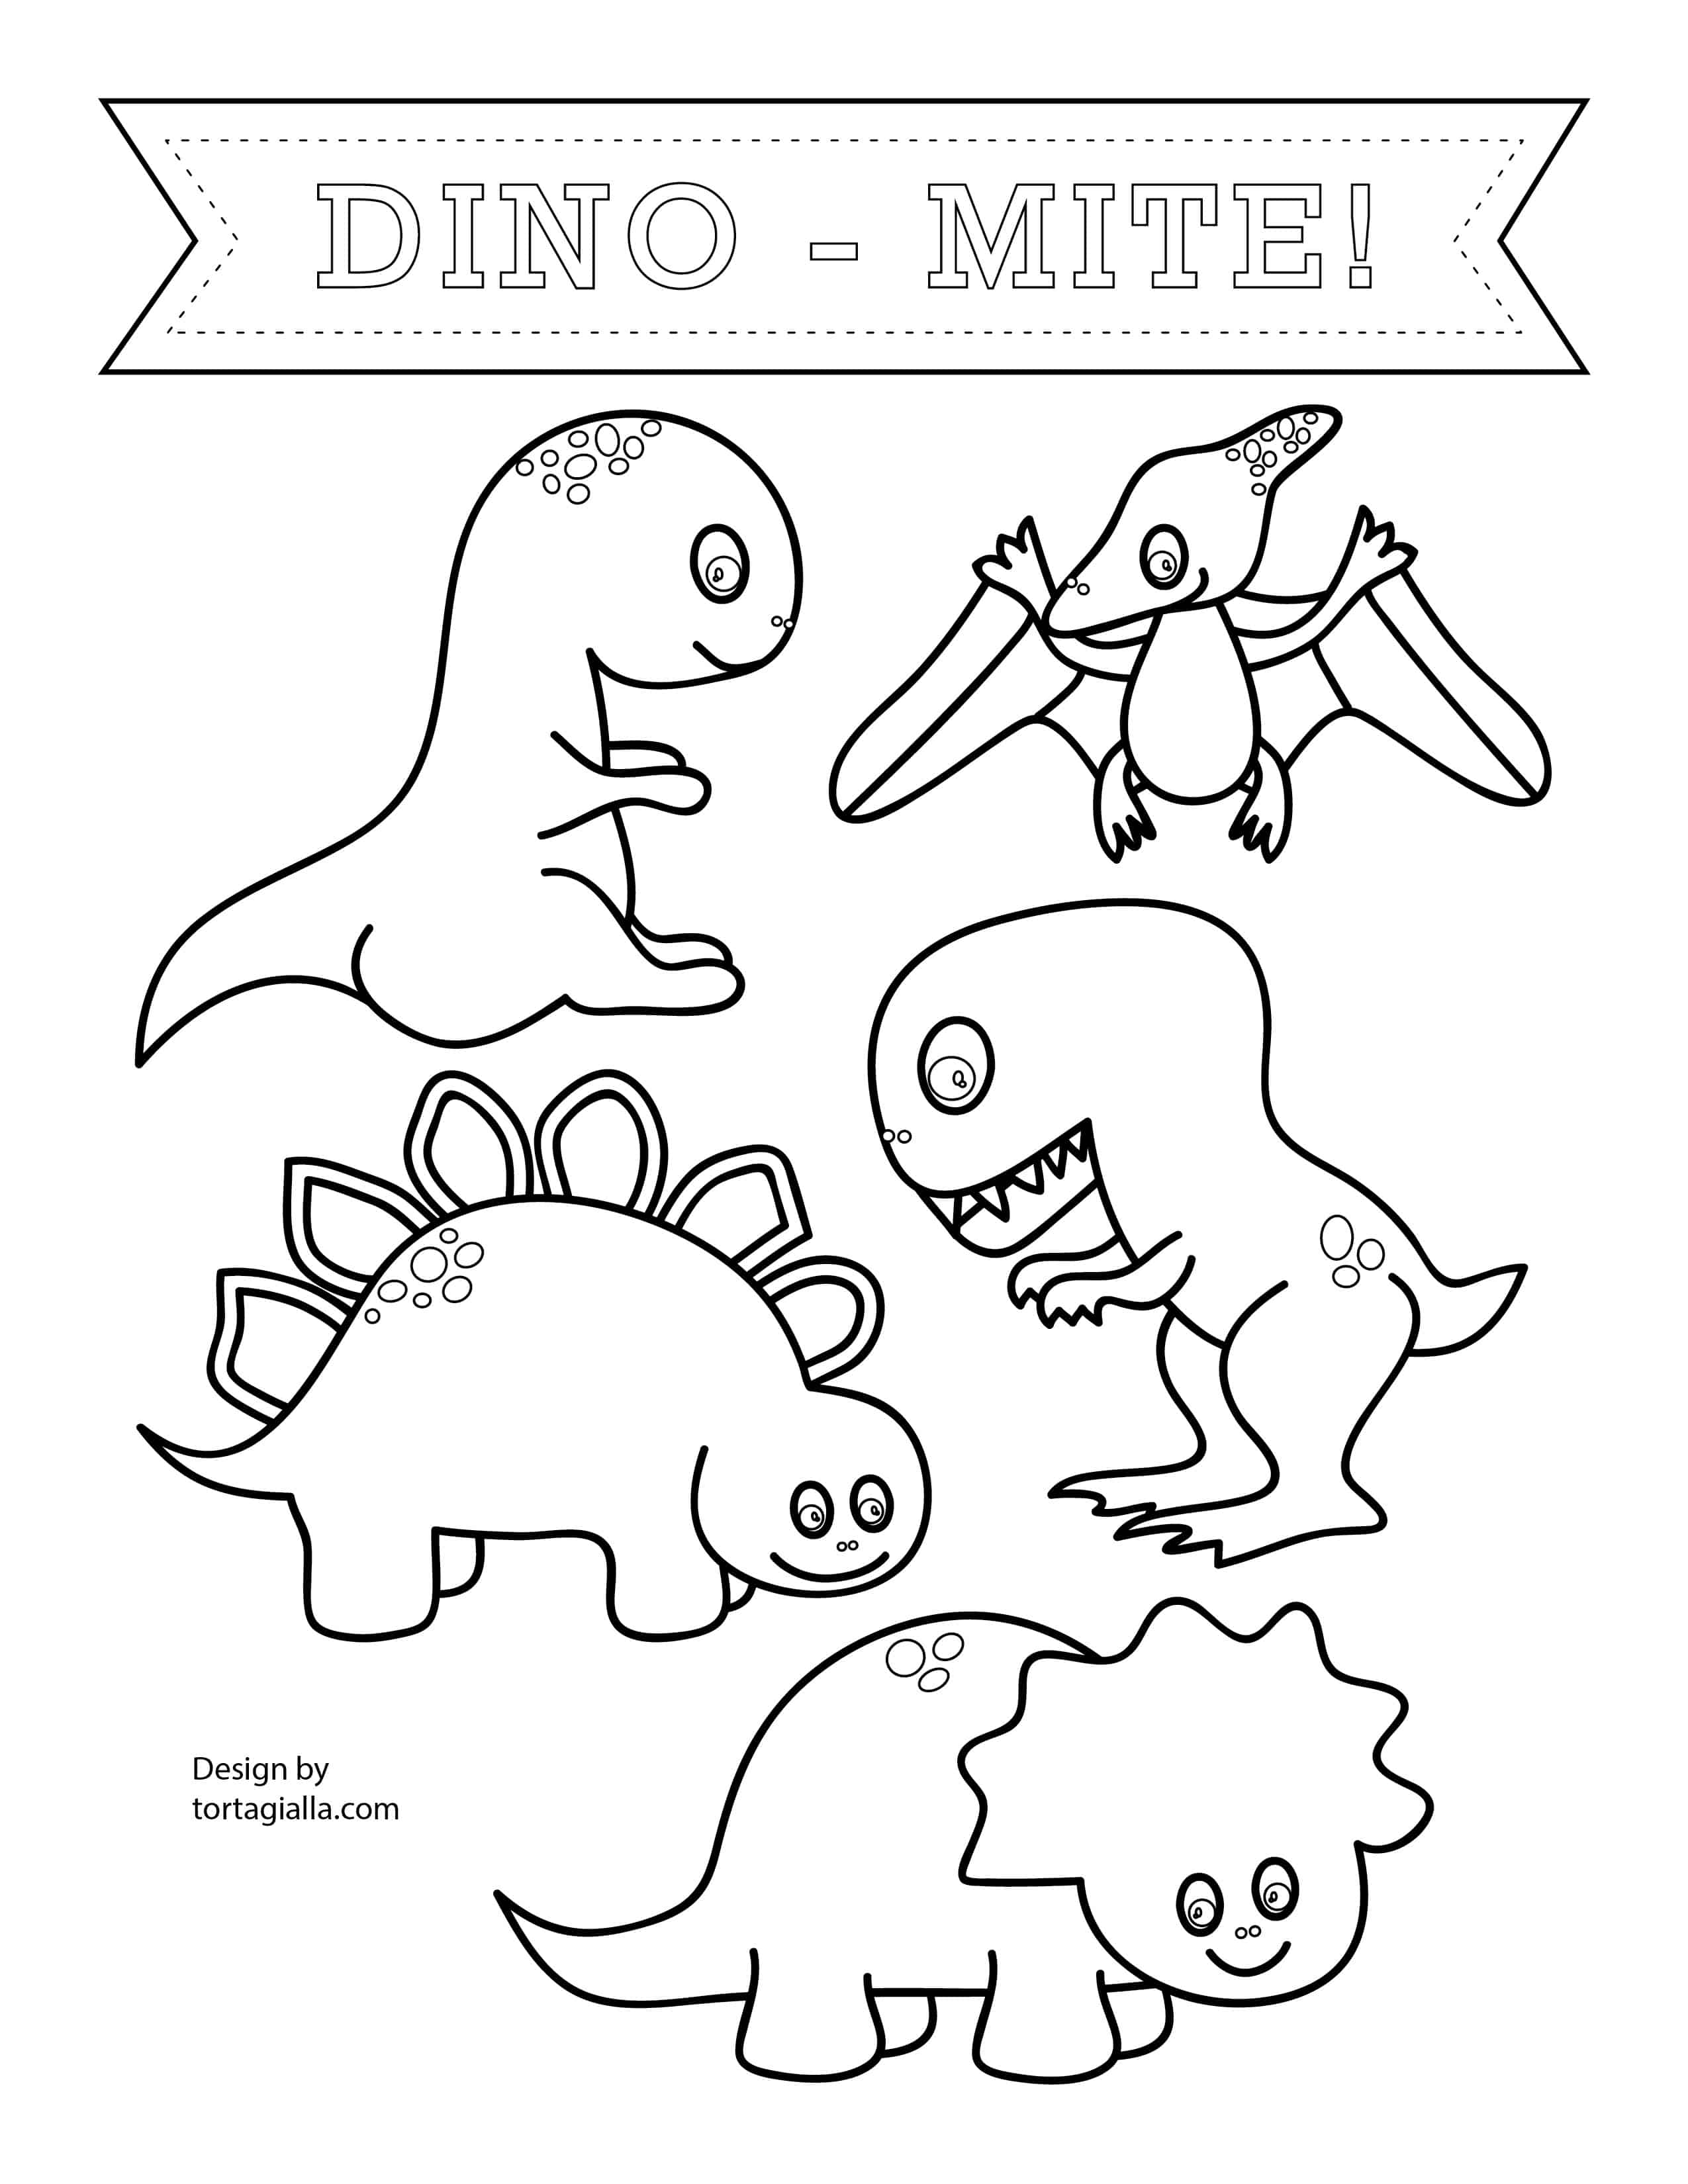 dinosaur print out coloring pages dinosaur coloring pages 1 coloring kids print dinosaur out coloring pages